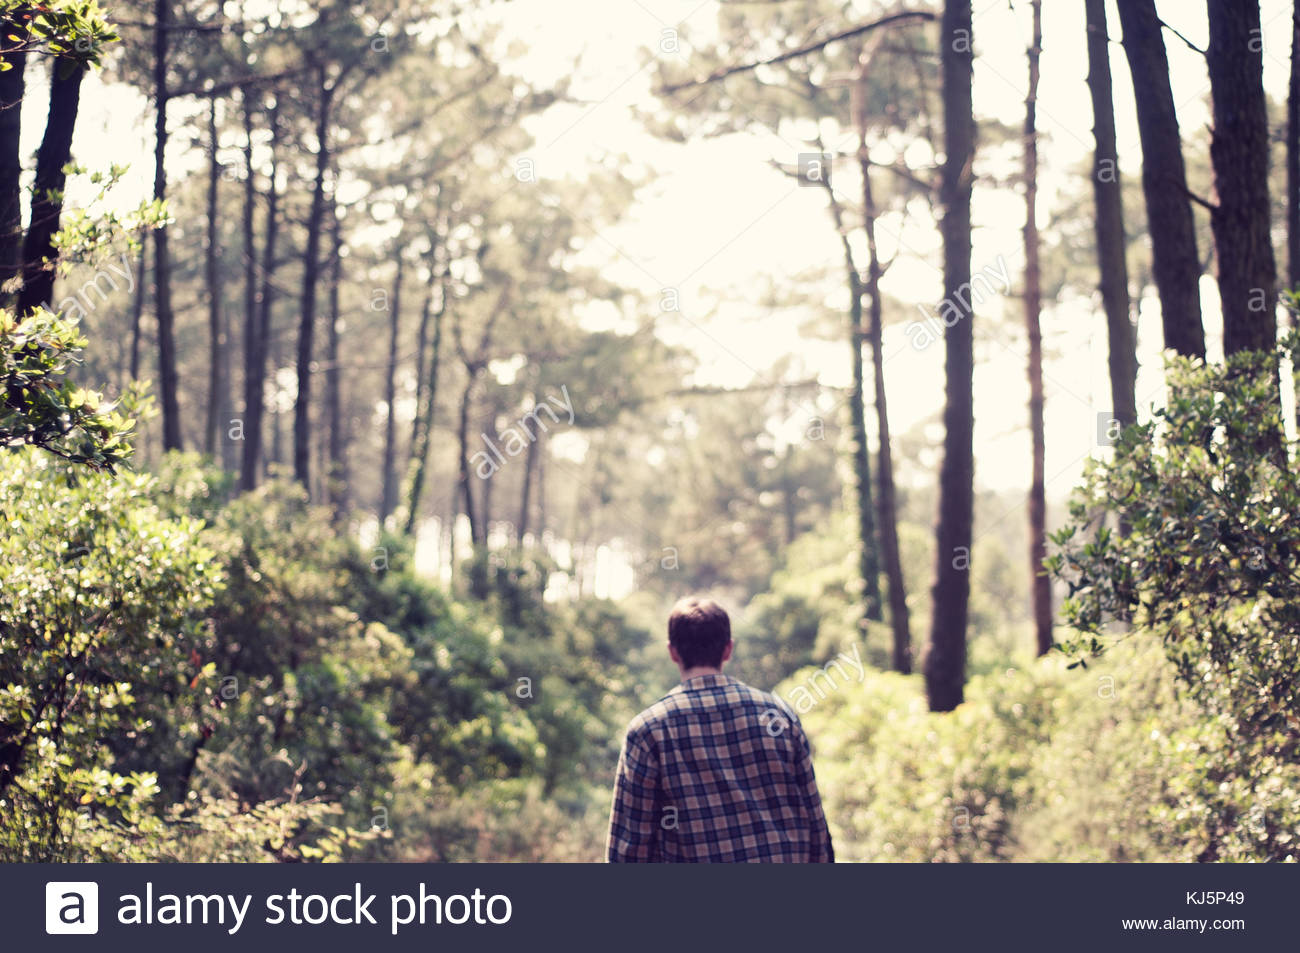 Man Walking im Wald Stockbild